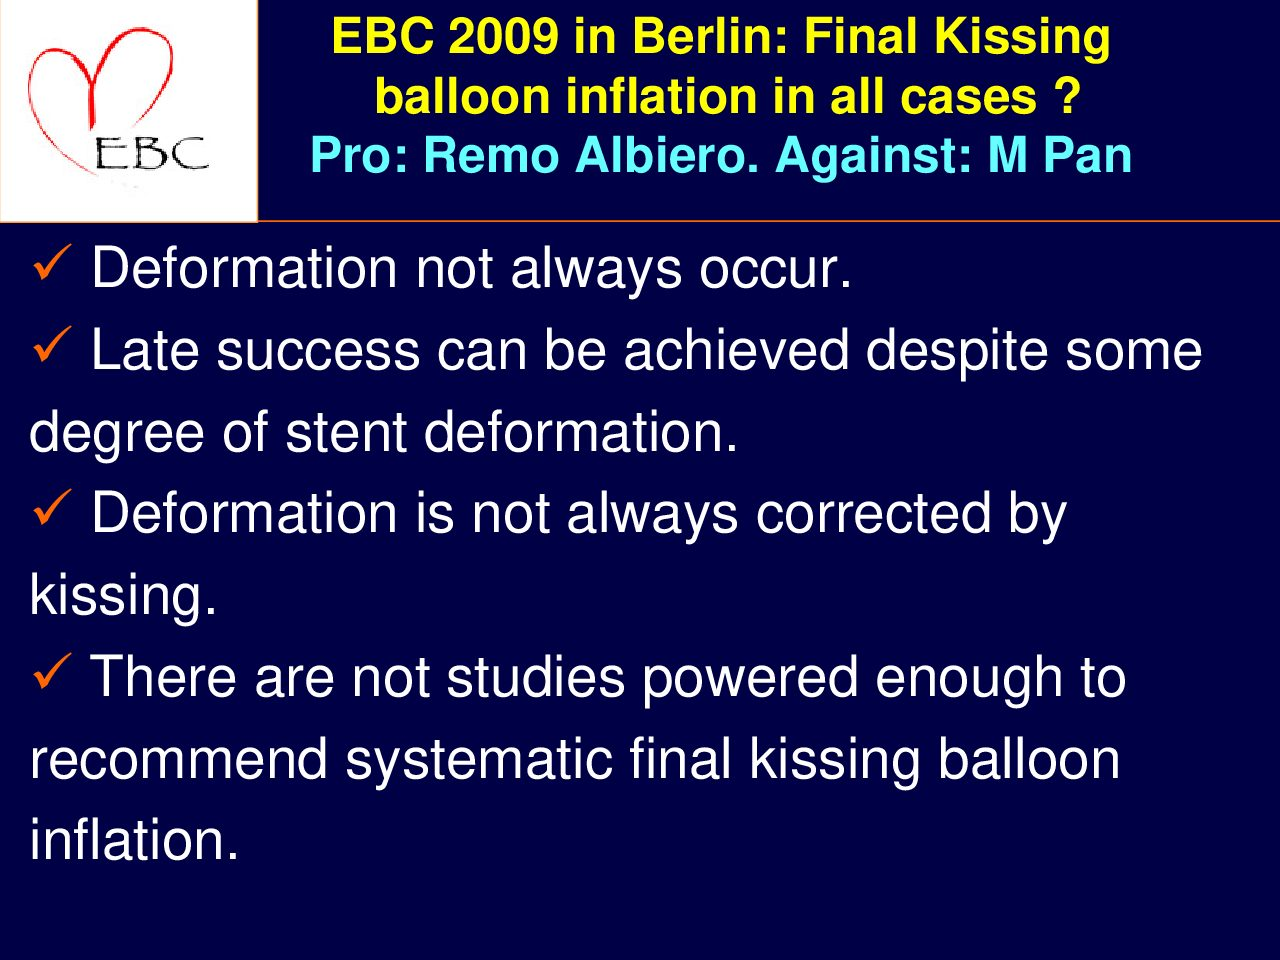 Final Kissing Balloon Inflation in all Cases